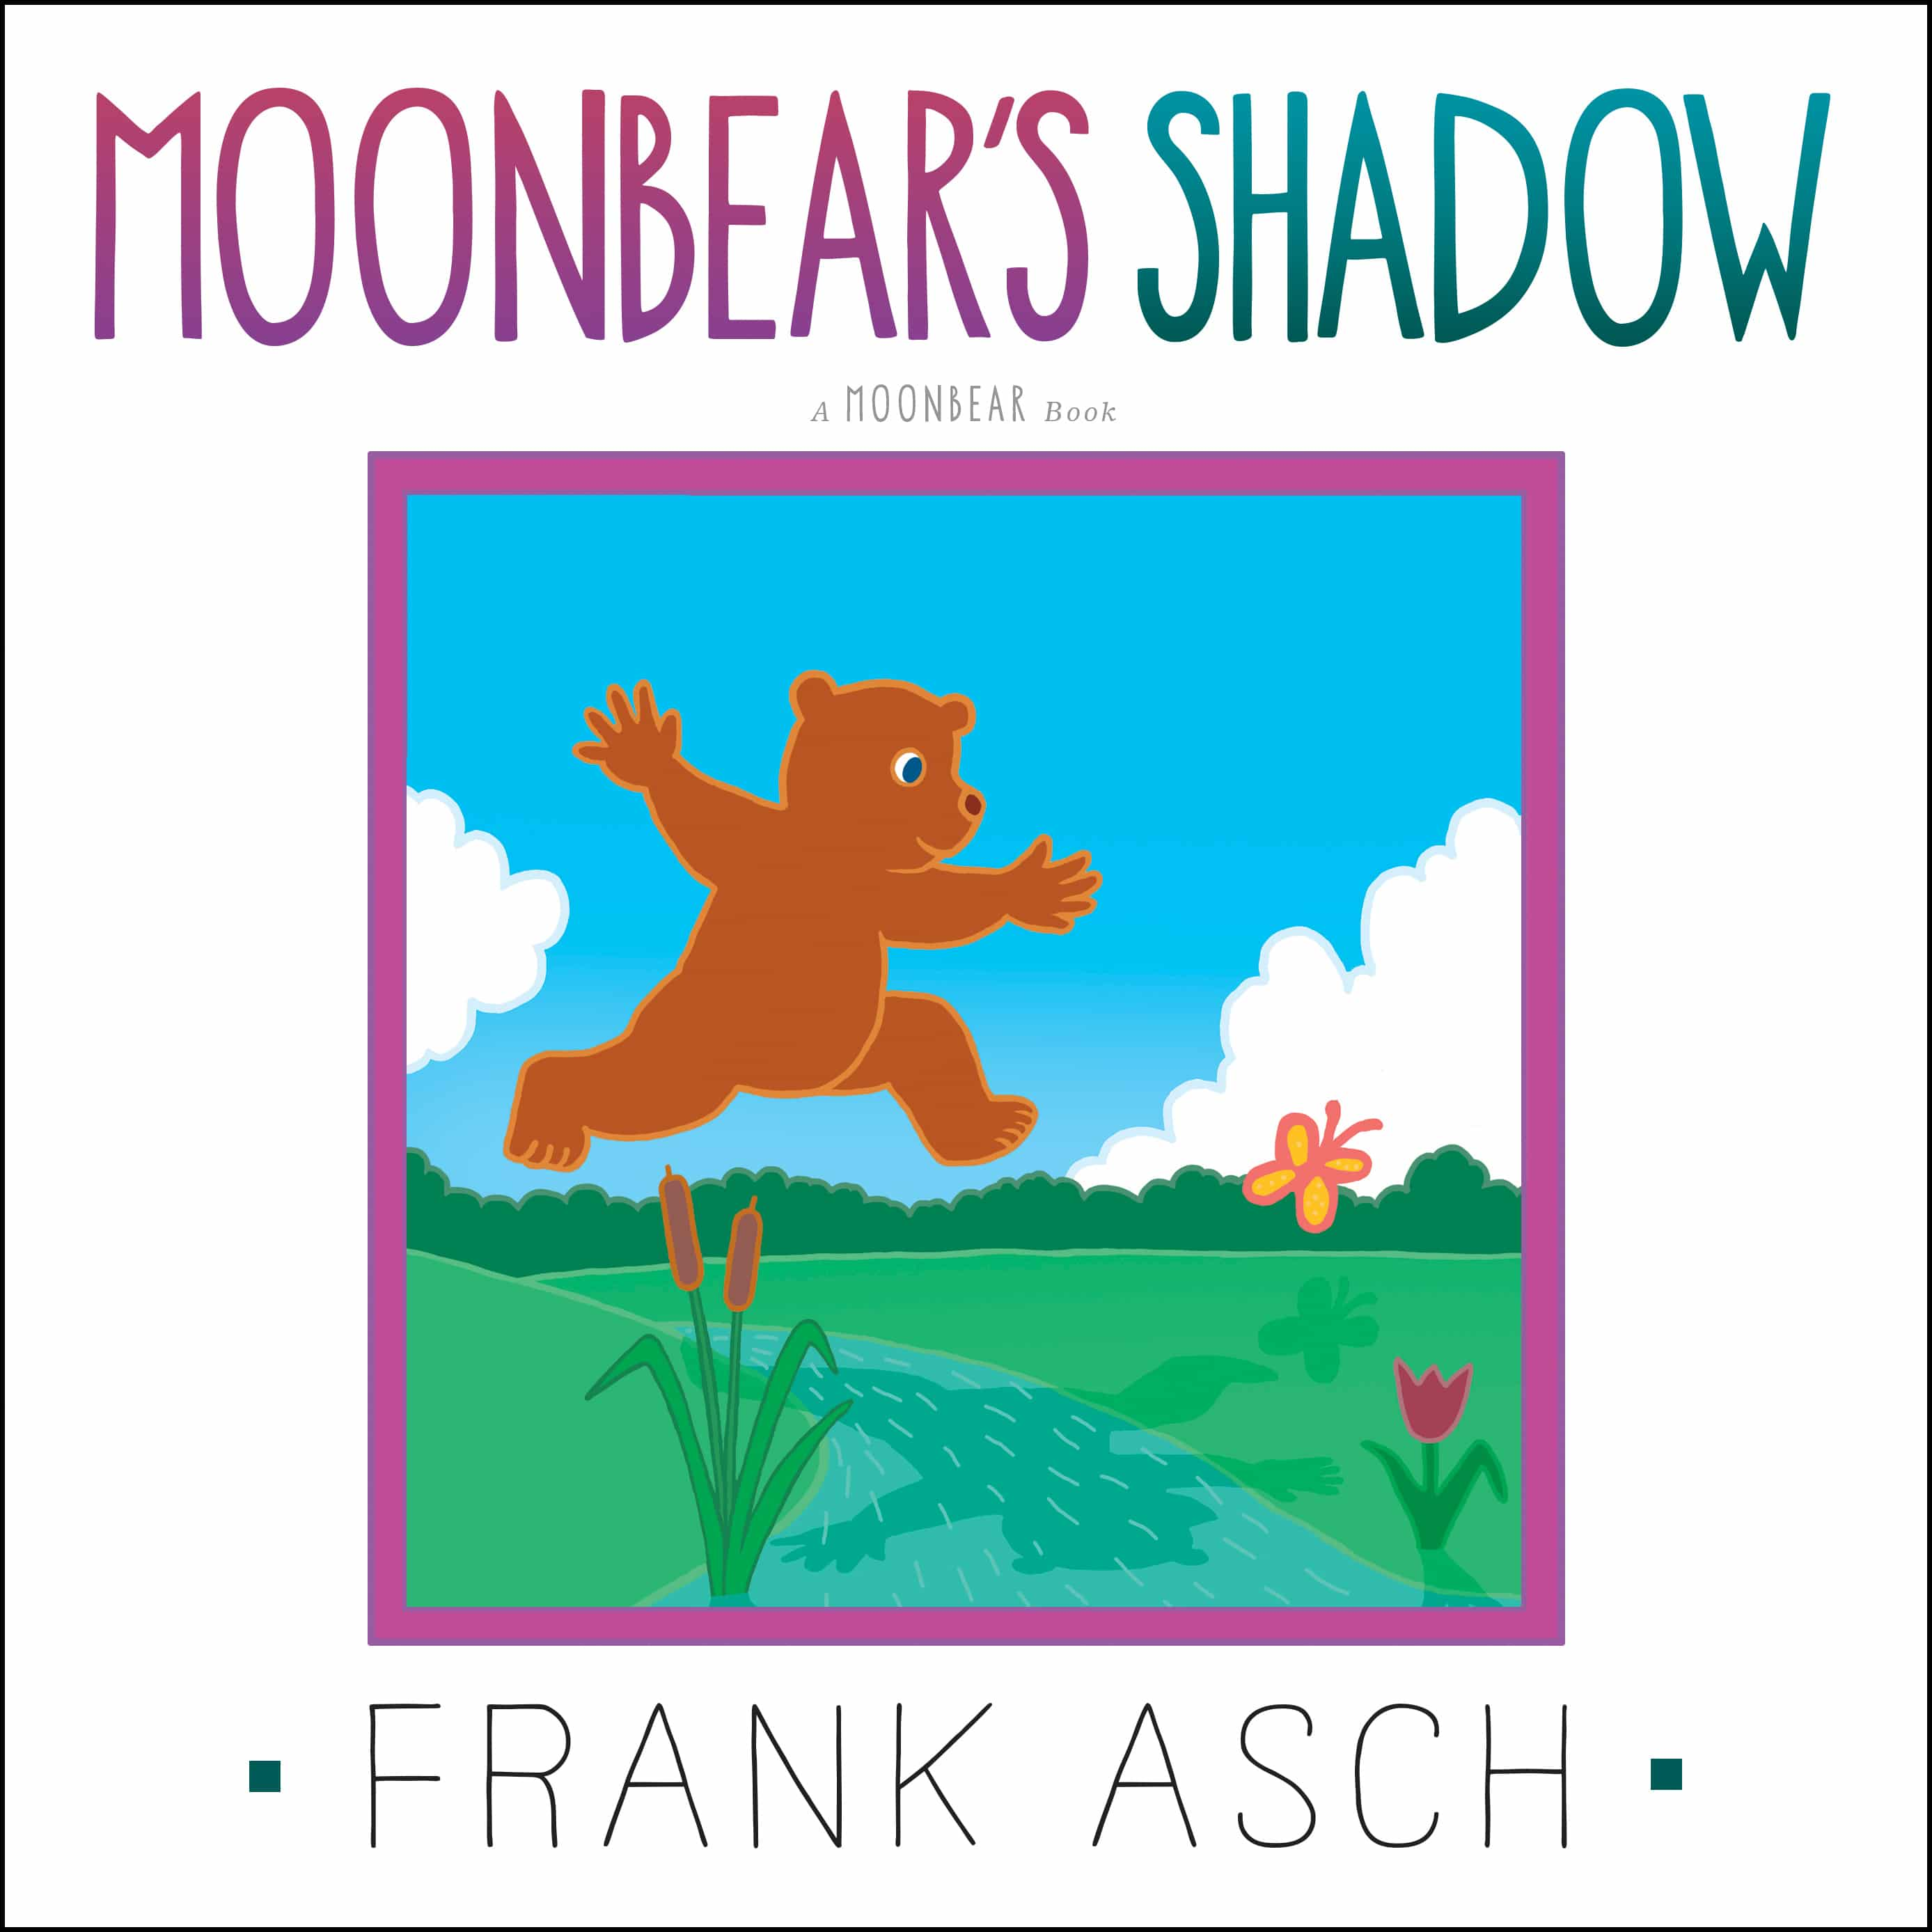 moonbears-shadow-by-frank-asch